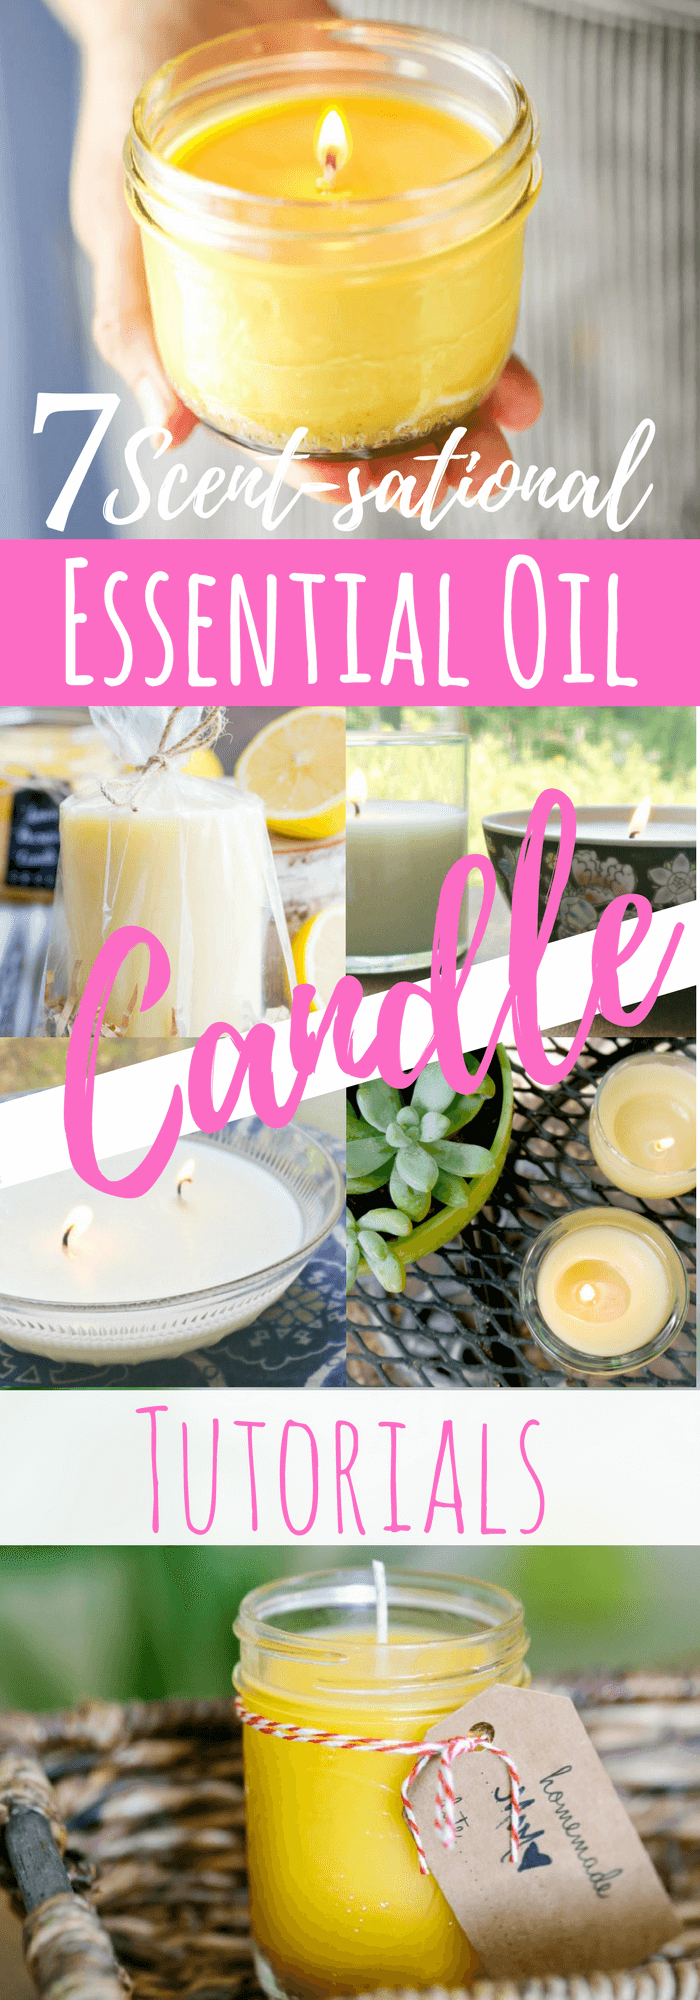 7 Diy Essential Oil Candle Recipe Tutorials Simple Pure Beauty